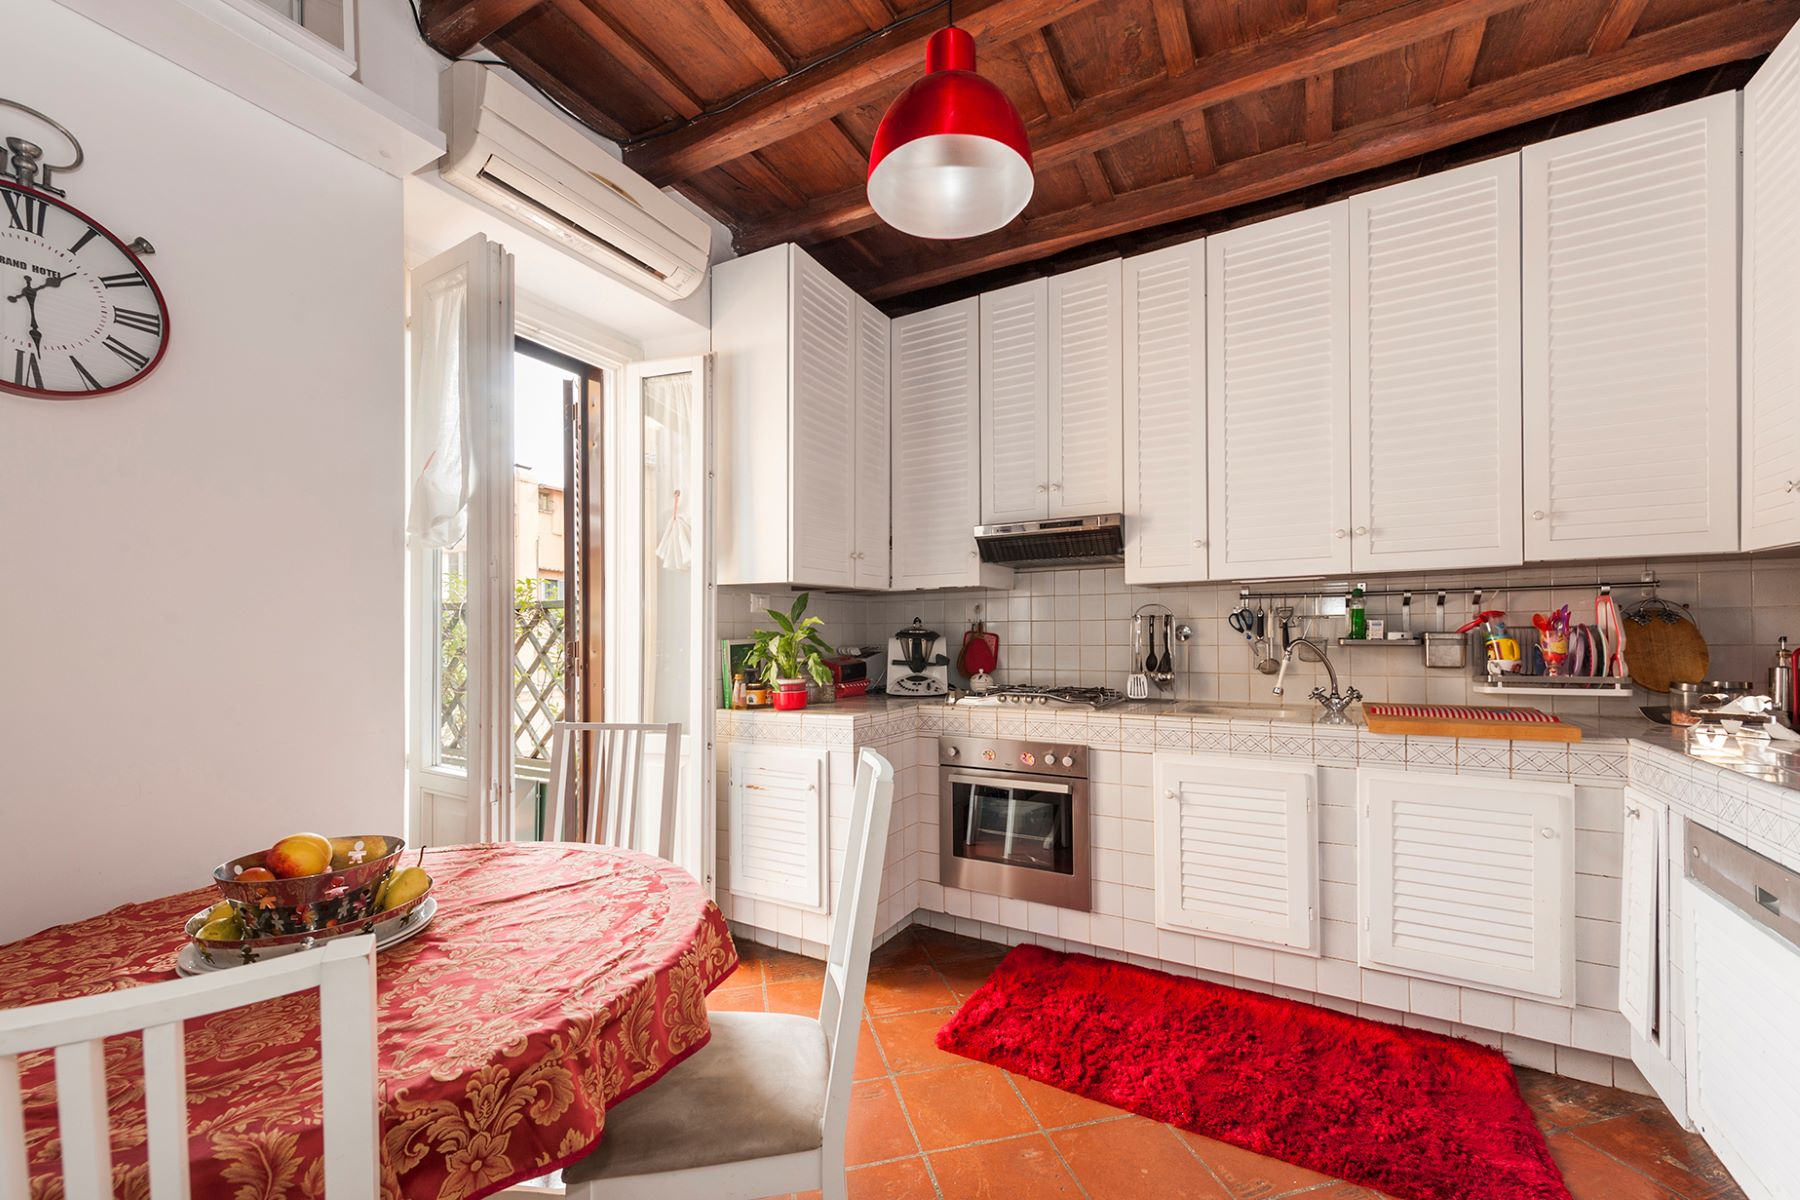 Additional photo for property listing at Quiet apartment with terrace close to the Trevi Fountain Vicolo Scavolino Rome, Rome 00187 Italie